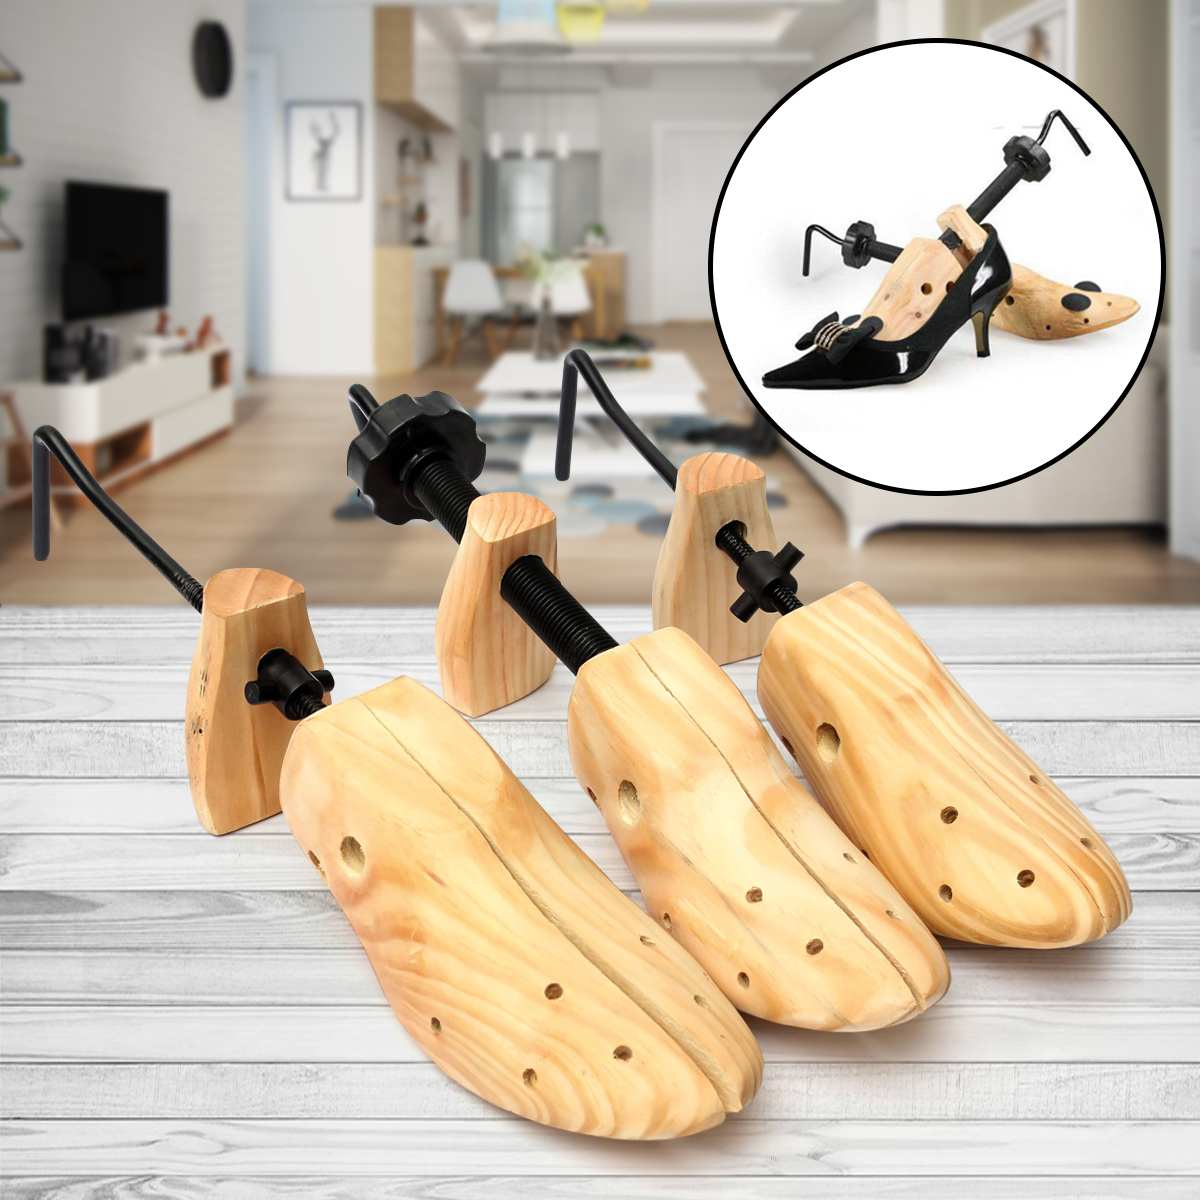 1Pcs Unisex Wooden Shoe Support Tree Stretcher Shaper Keeper Expander Adjustable